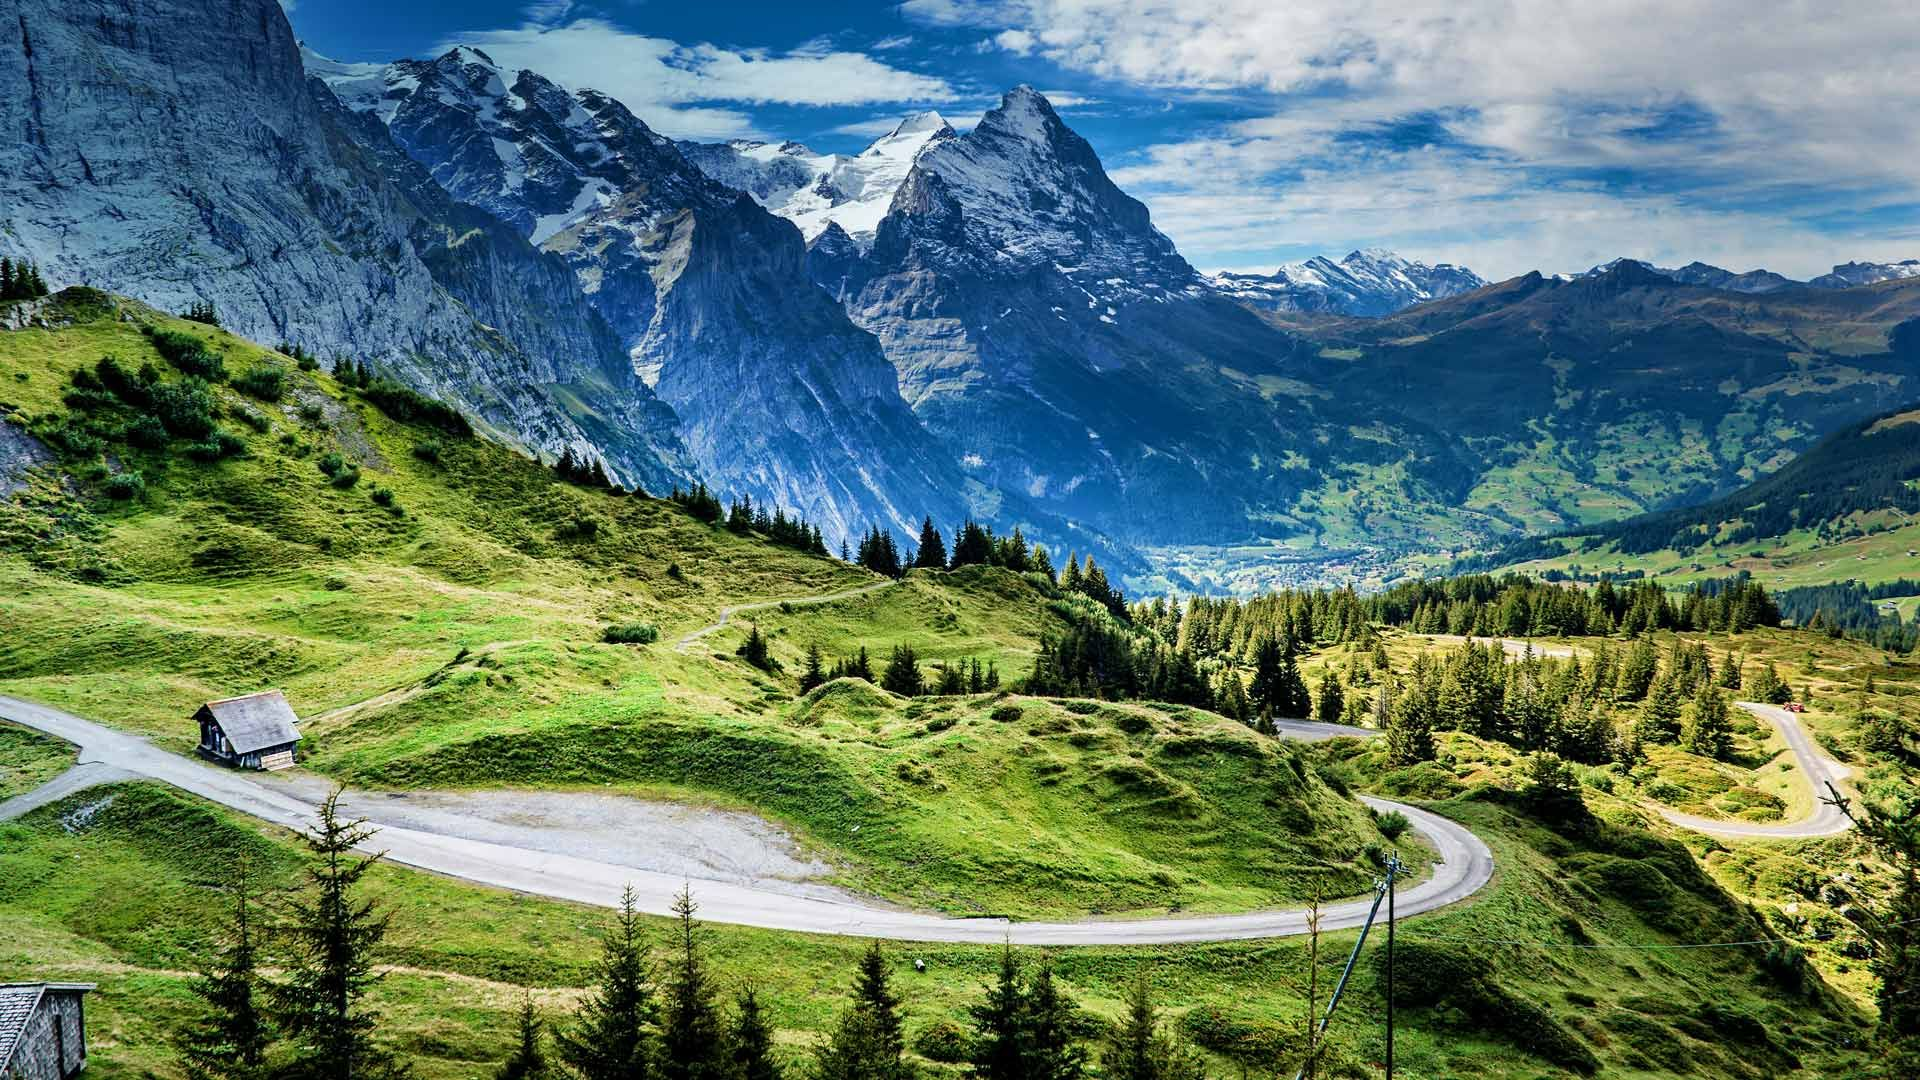 View of the Eiger from the Grosse Scheidegg mountain pass